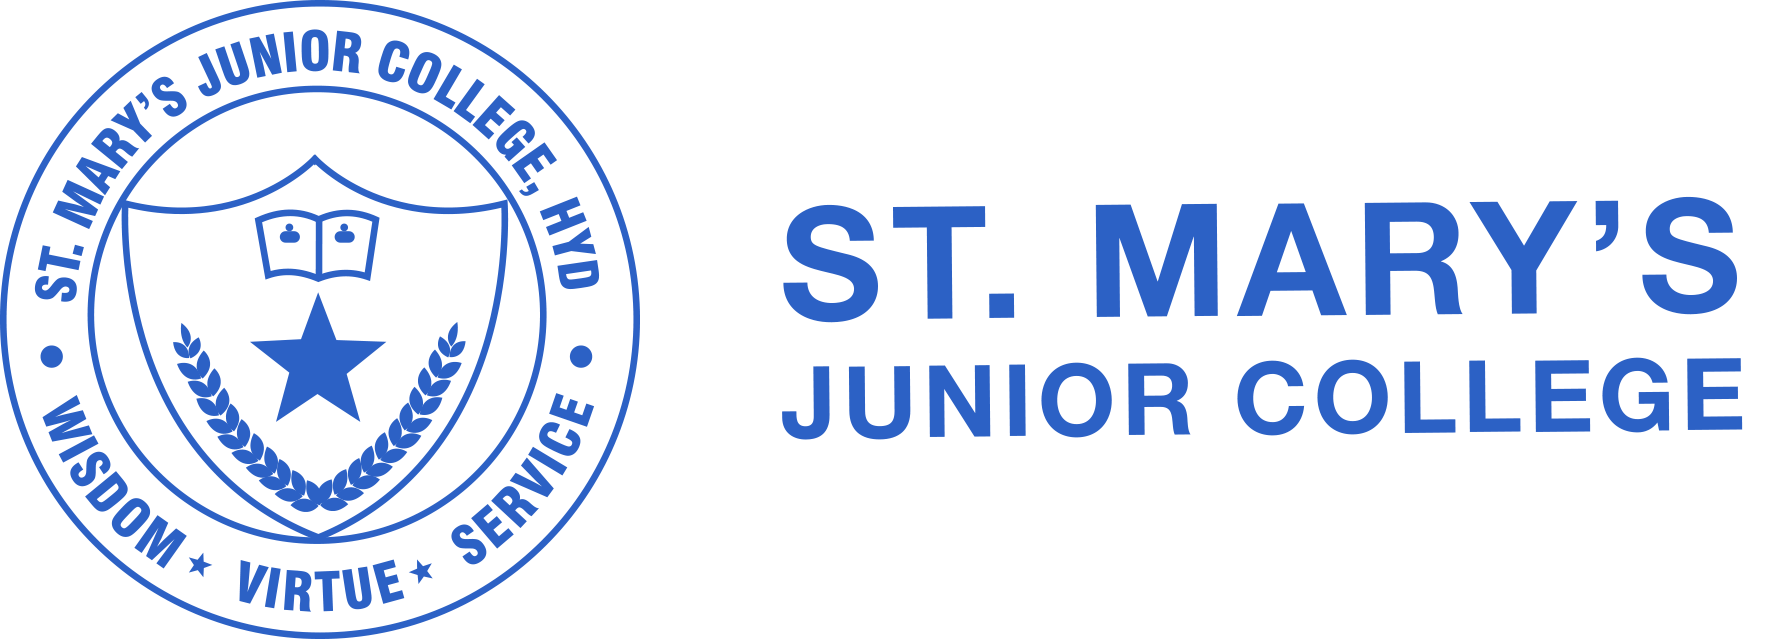 St Mary's Junior College | Jubilee Hills Campus